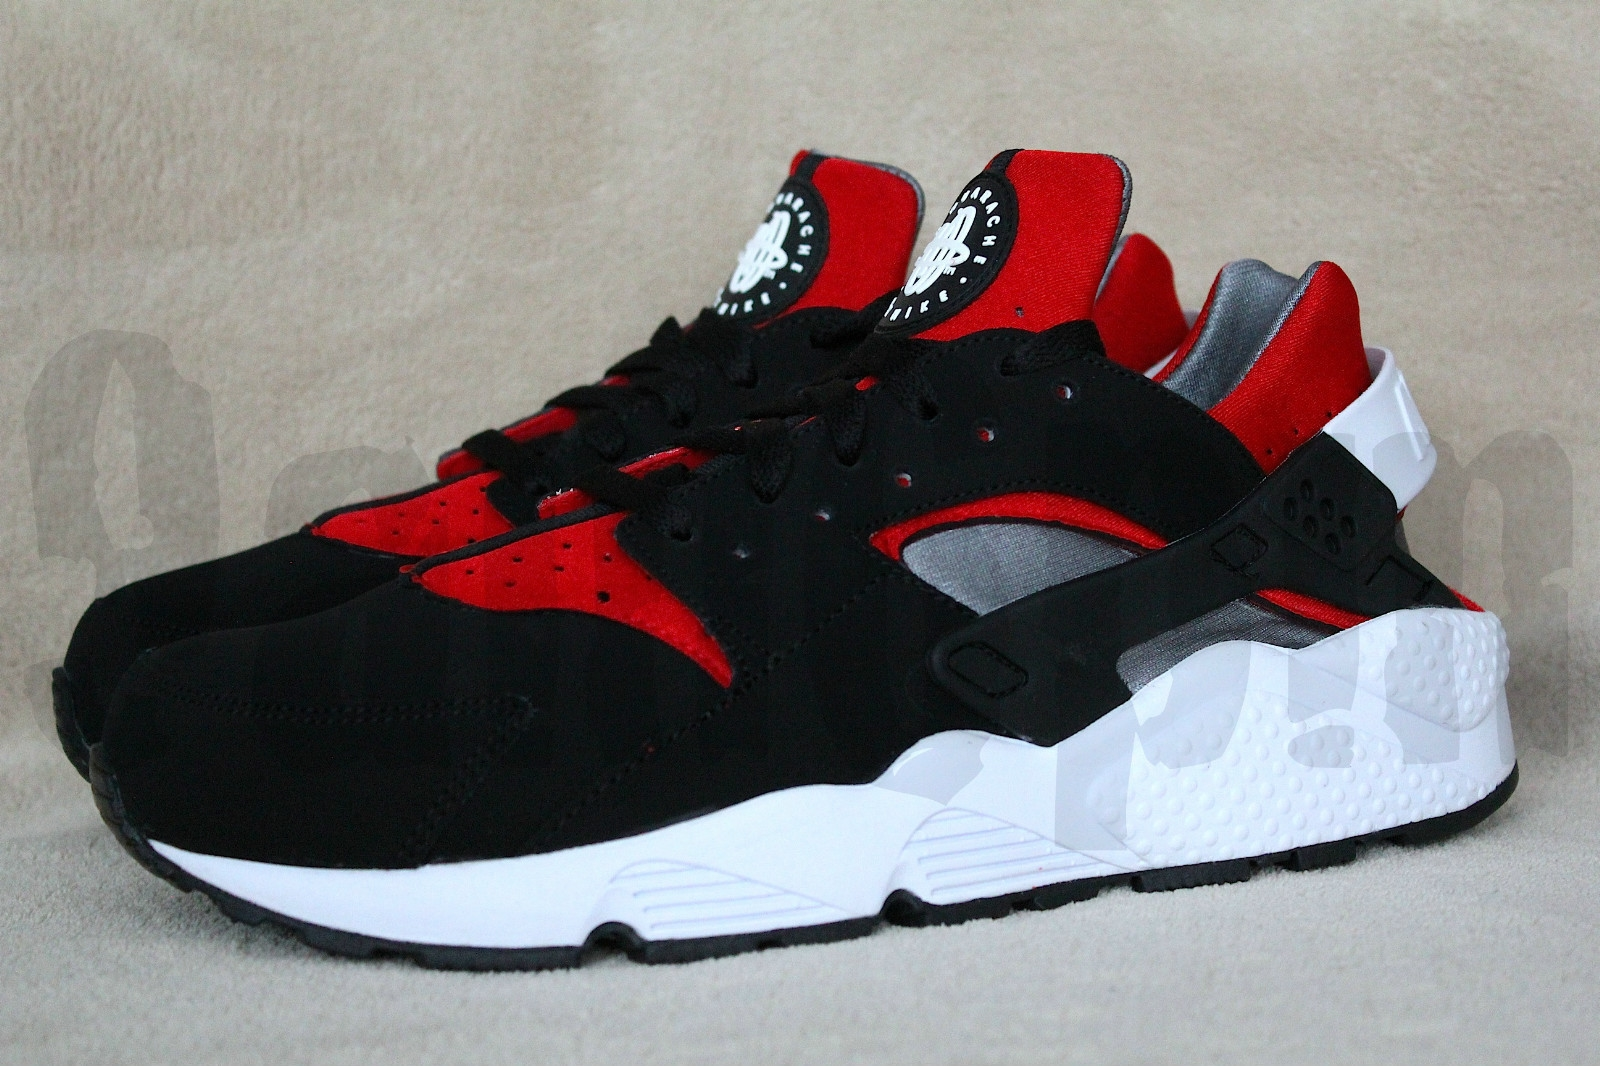 sneaker archive 2012 nike air huarache black sport red. Black Bedroom Furniture Sets. Home Design Ideas